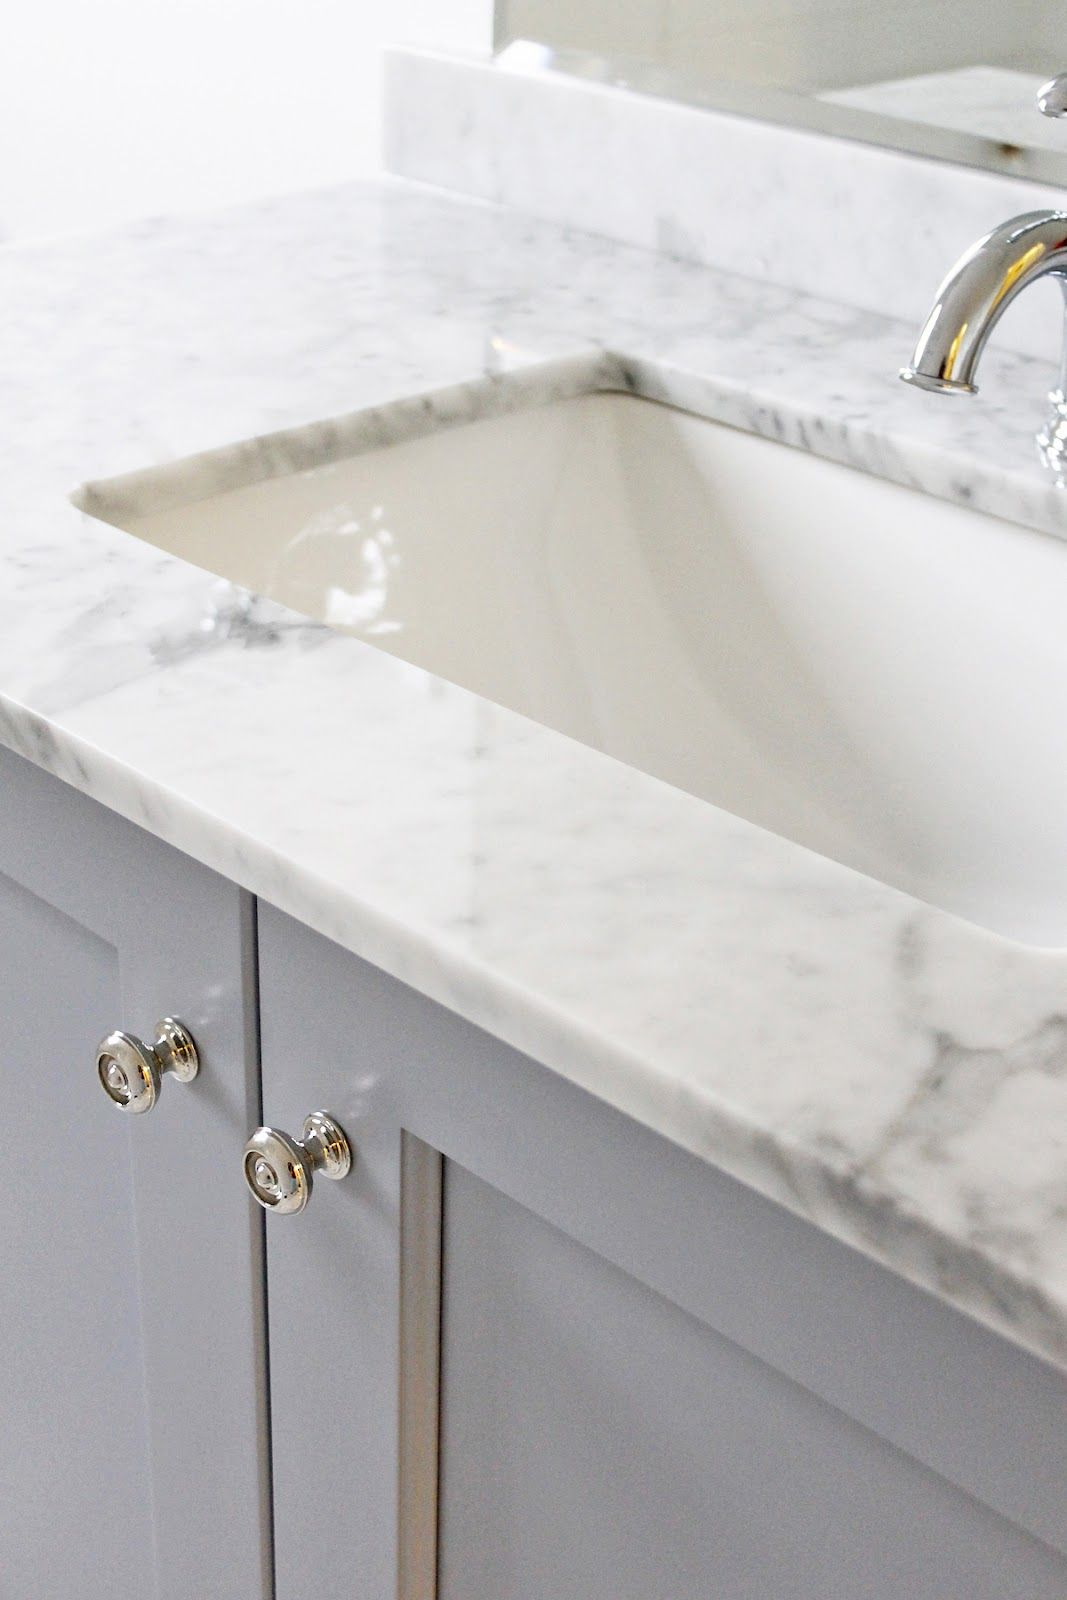 Benjamin Moore Pigeon Gray Cabinets Marble Counter Tops Master